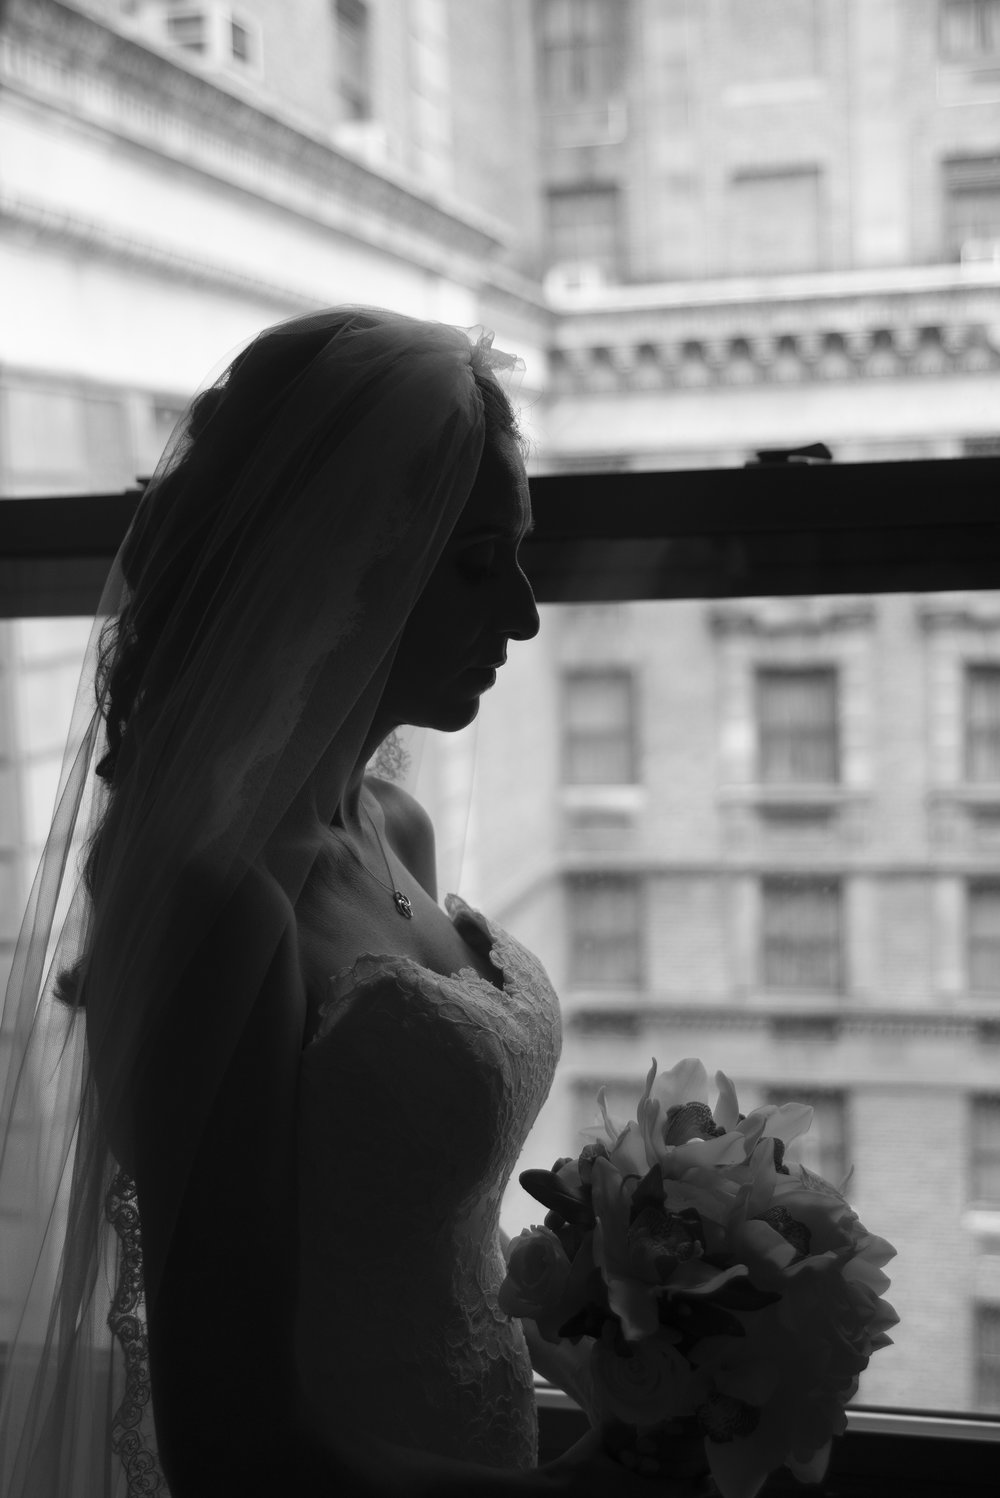 Jen & Matt's NYC Wedding at The Roosevelt Hotel, Convent of the Sacred Heart (The Burden Kahn Mansions), and The Yale Club. Photographed by Unveiled-Weddings.com / @unveiledweddings_ #rooseveltnyc #NewYorkWedding #WeddingDress